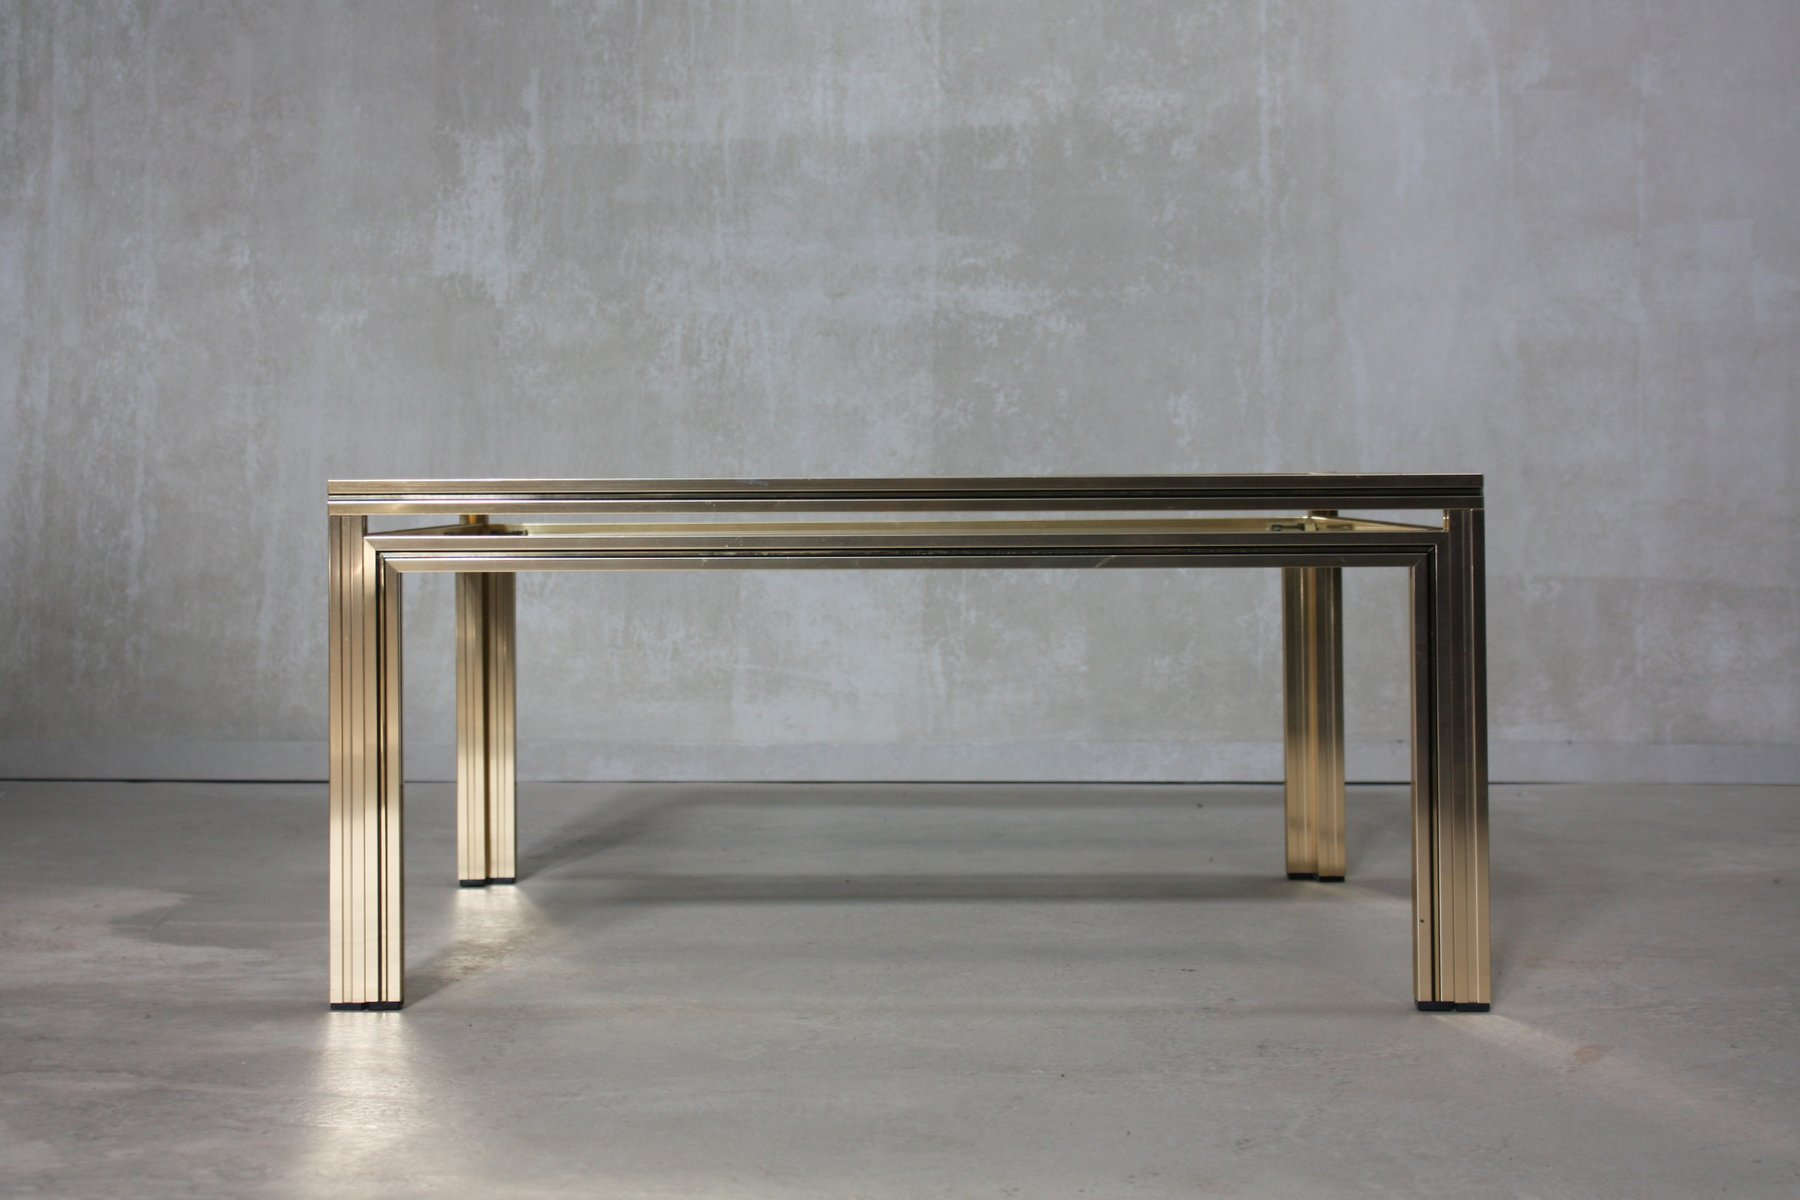 Gold Square Coffee Table by Pierre Vandel 1970s for sale at Pamono